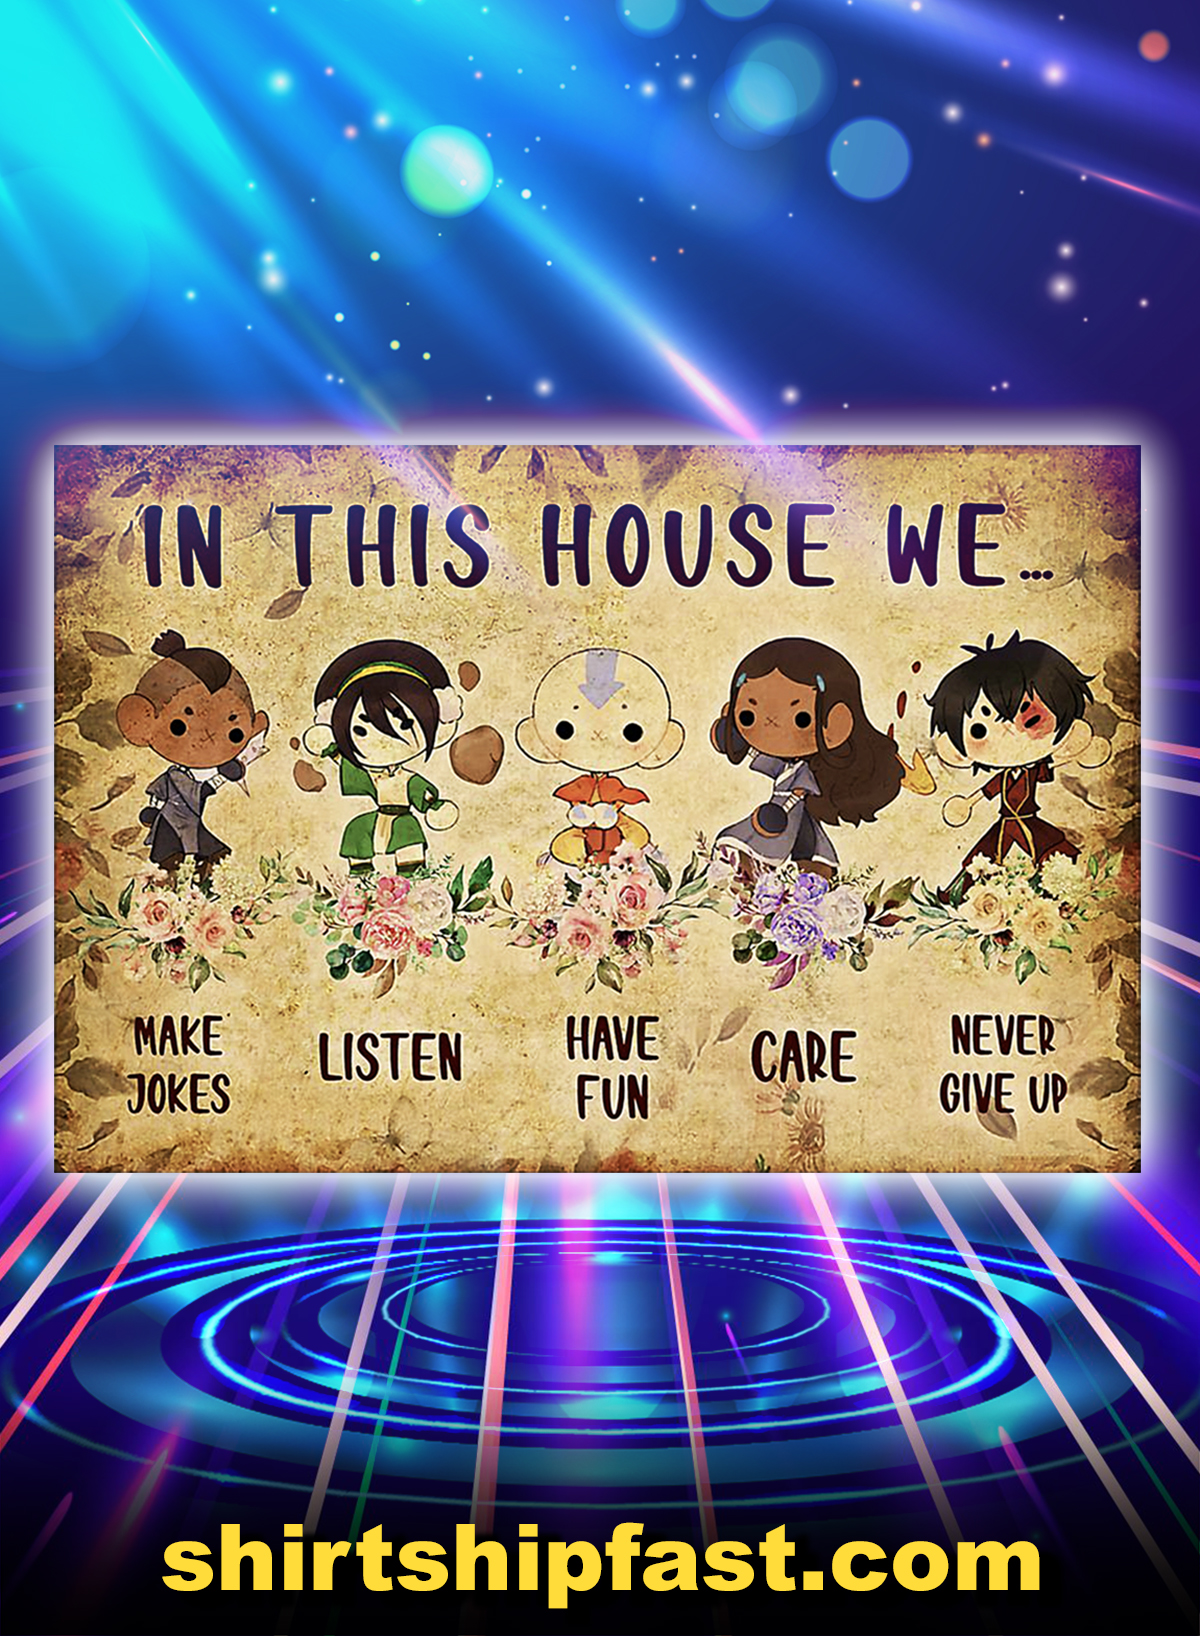 Flower last airbender in this house we poster - A1